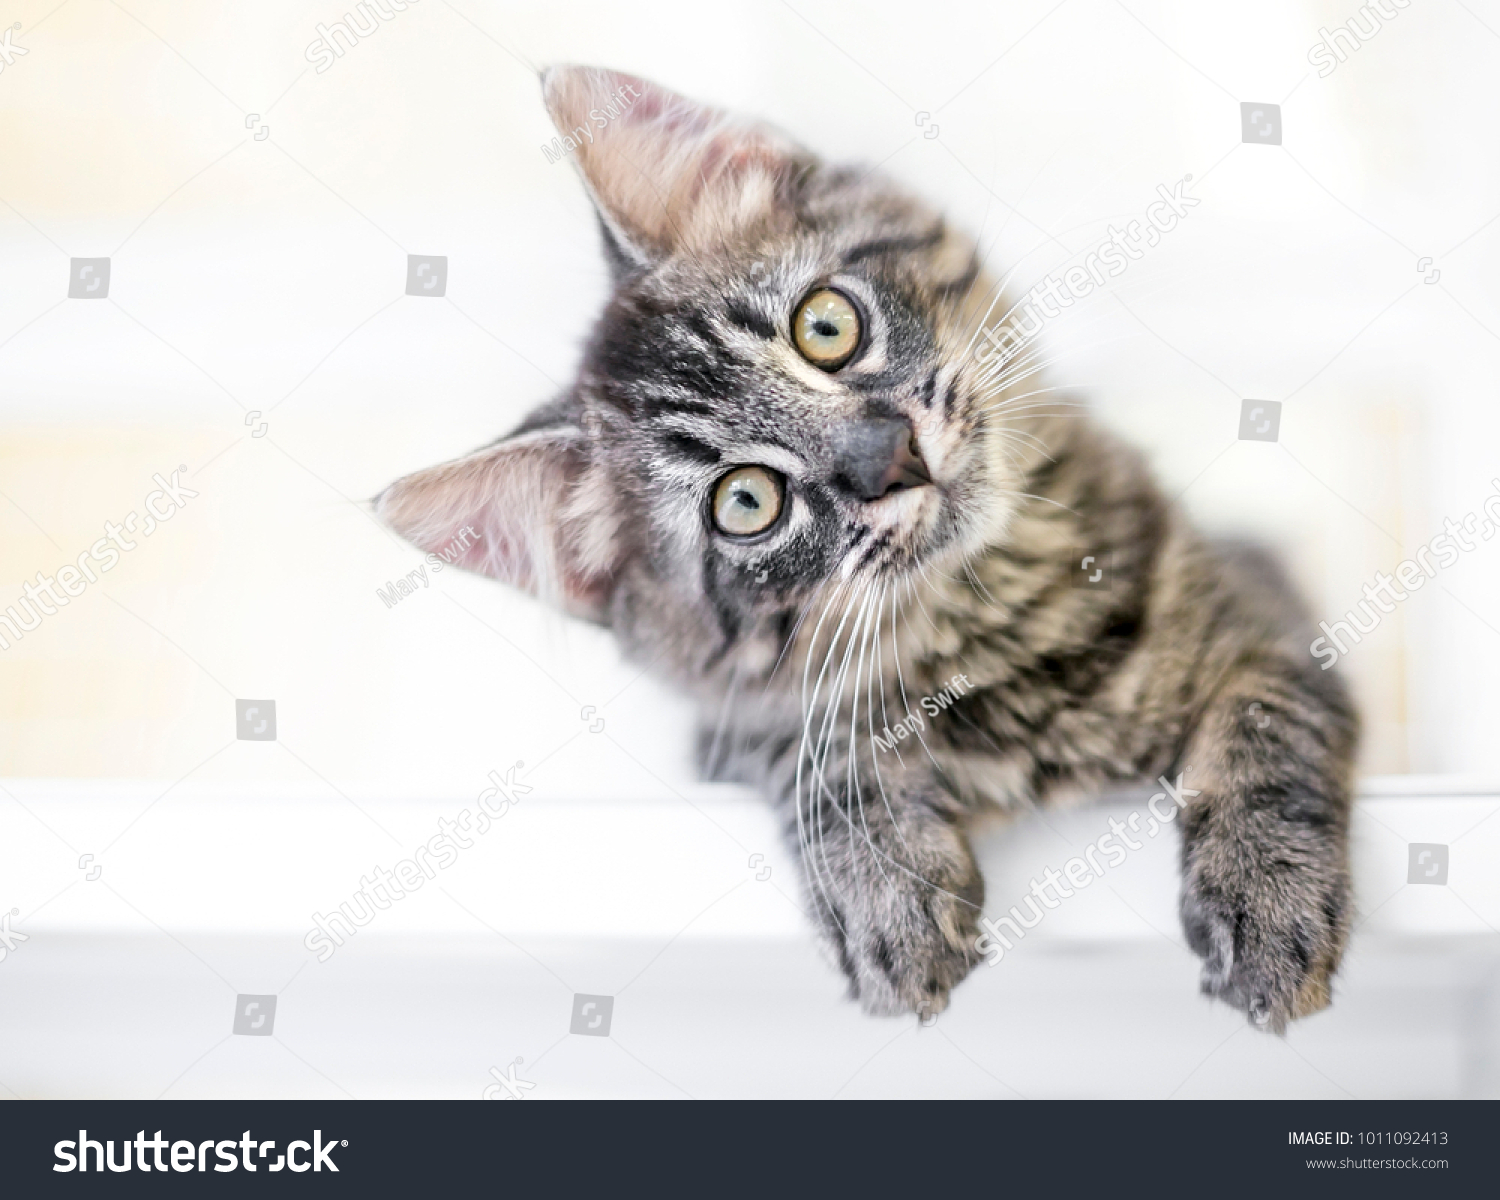 A young kitten gazing at the viewer curiously with a head tilt #1011092413